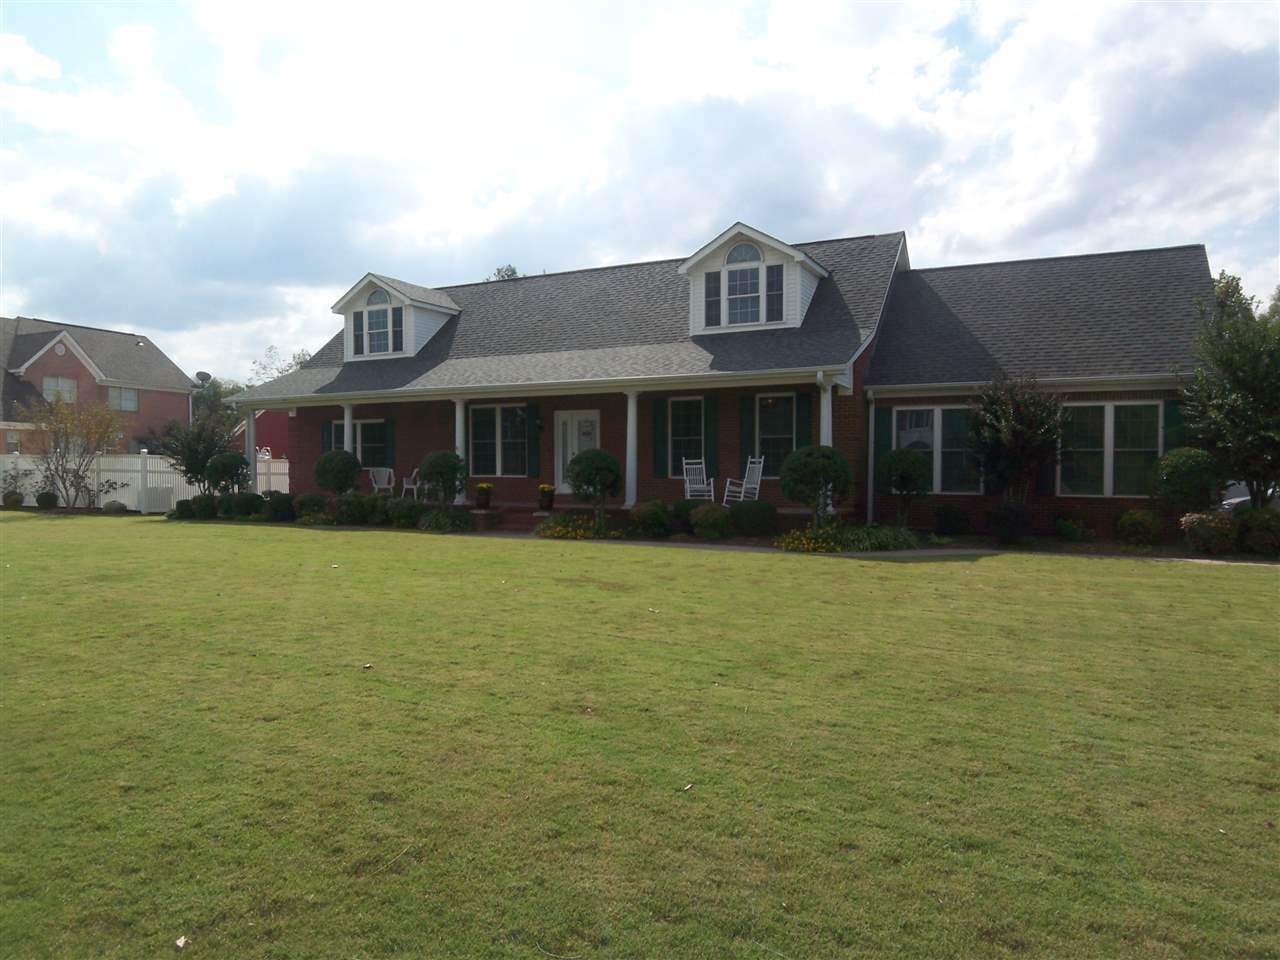 1721 Clubhouse Drive,Dyersburg,Tennessee 38024,4 Bedrooms Bedrooms,3 BathroomsBathrooms,Residential,1721 Clubhouse Drive,177077